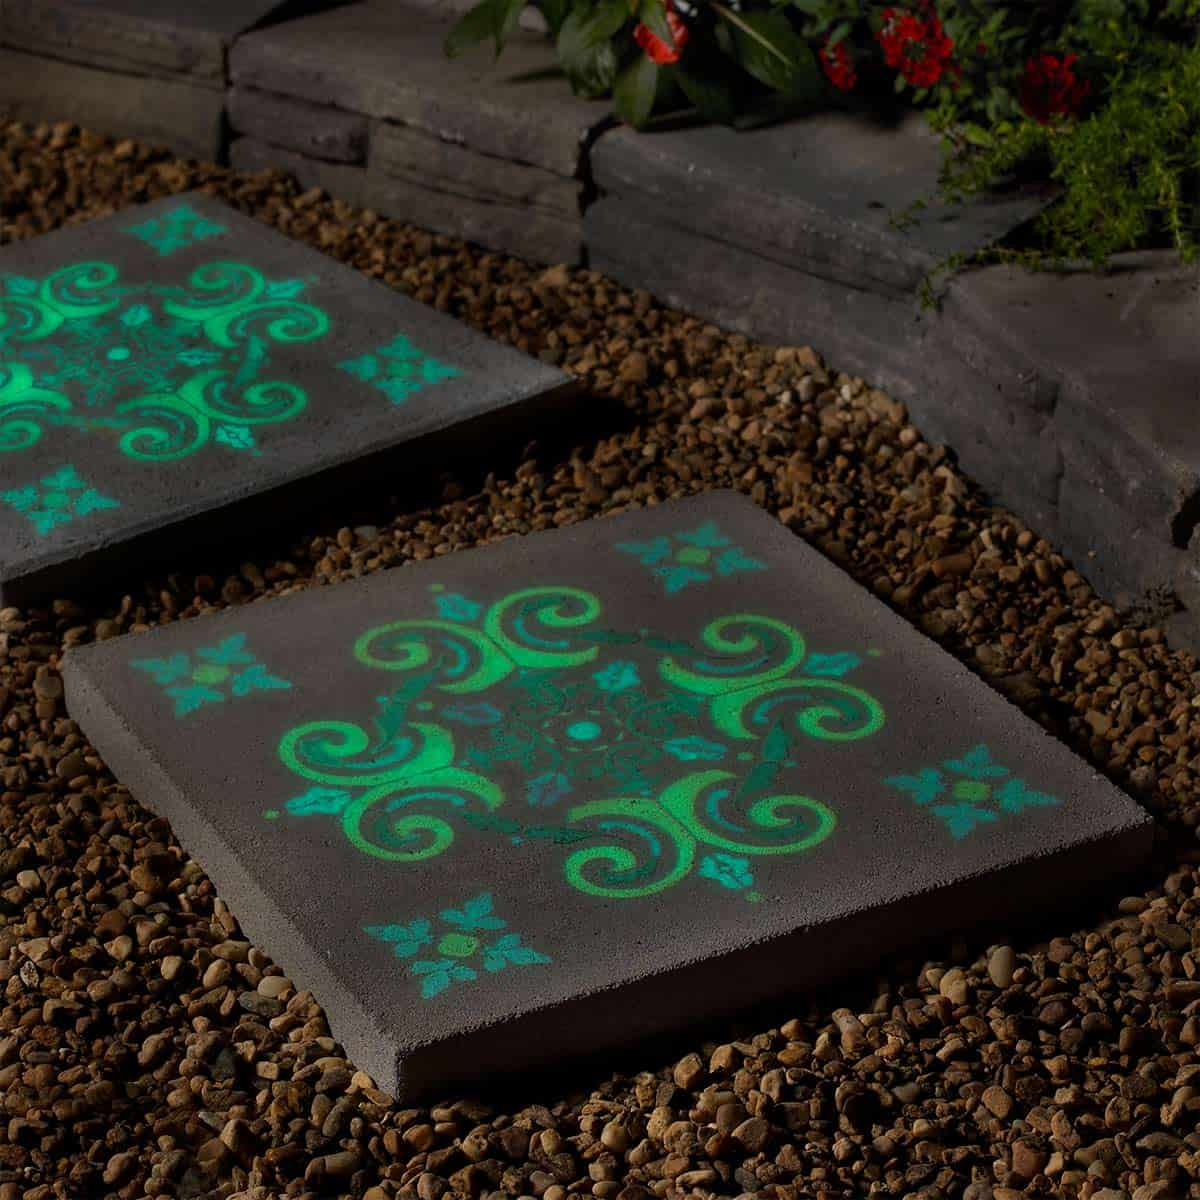 Glow in the dark stencil stepping stone